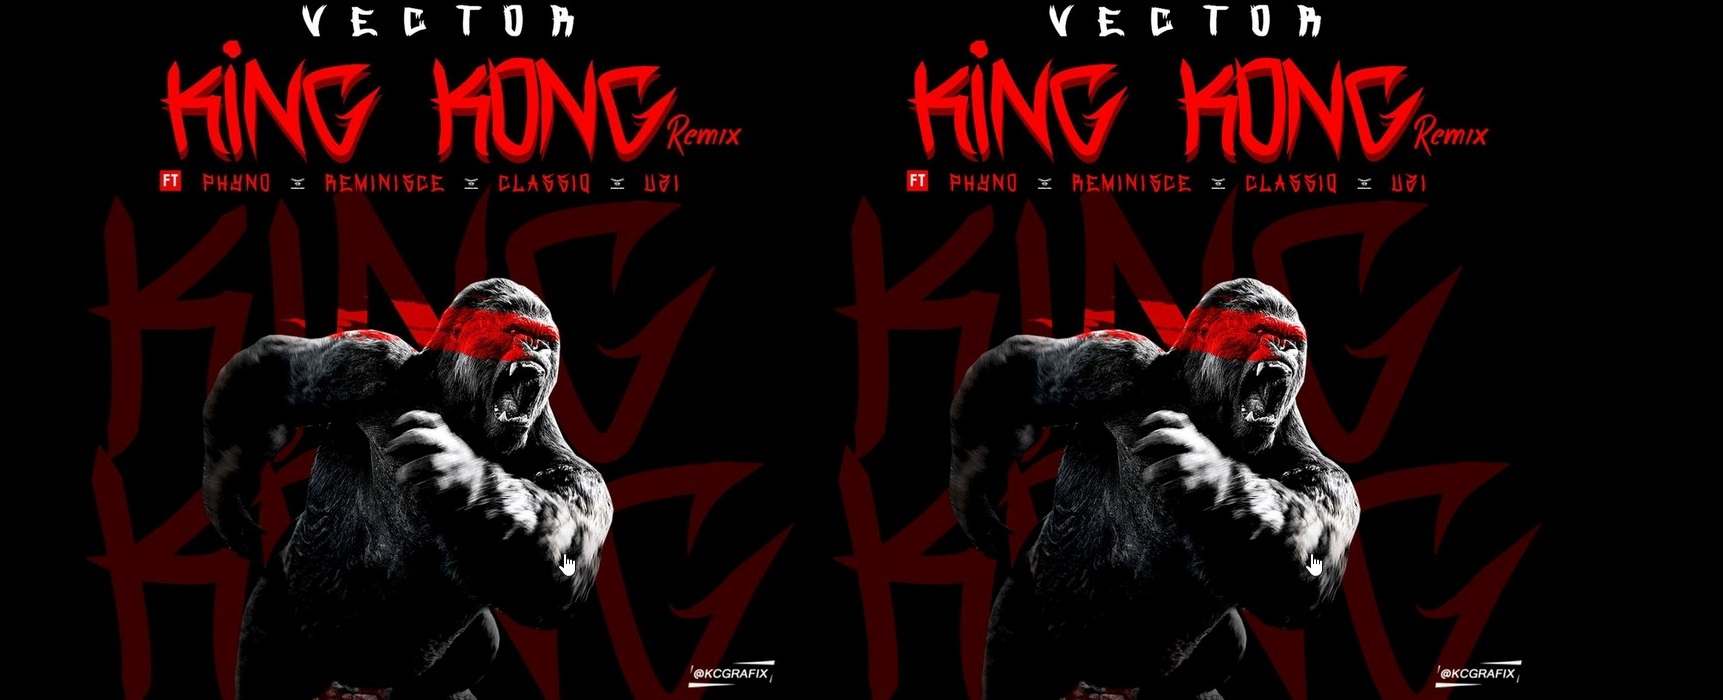 Vector King Kong Remix